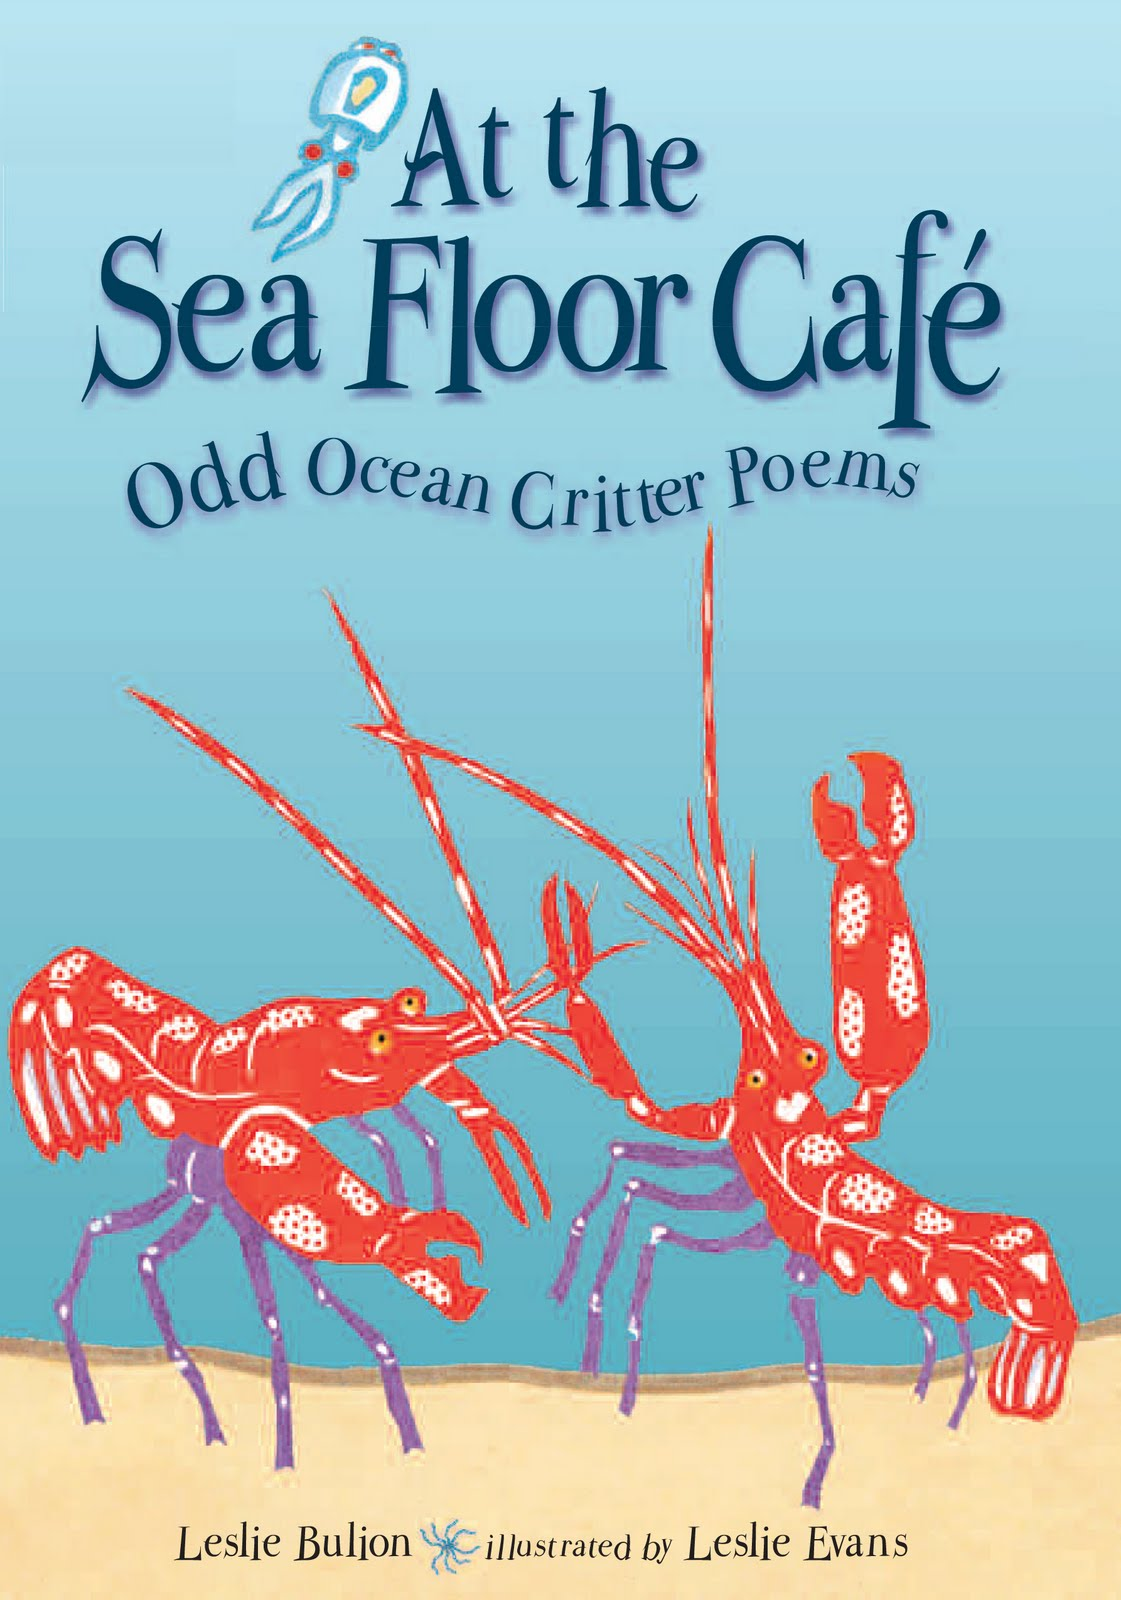 Worksheet Poetry Books For Children books for kids poetry in the ocean poems at sea floor cafe